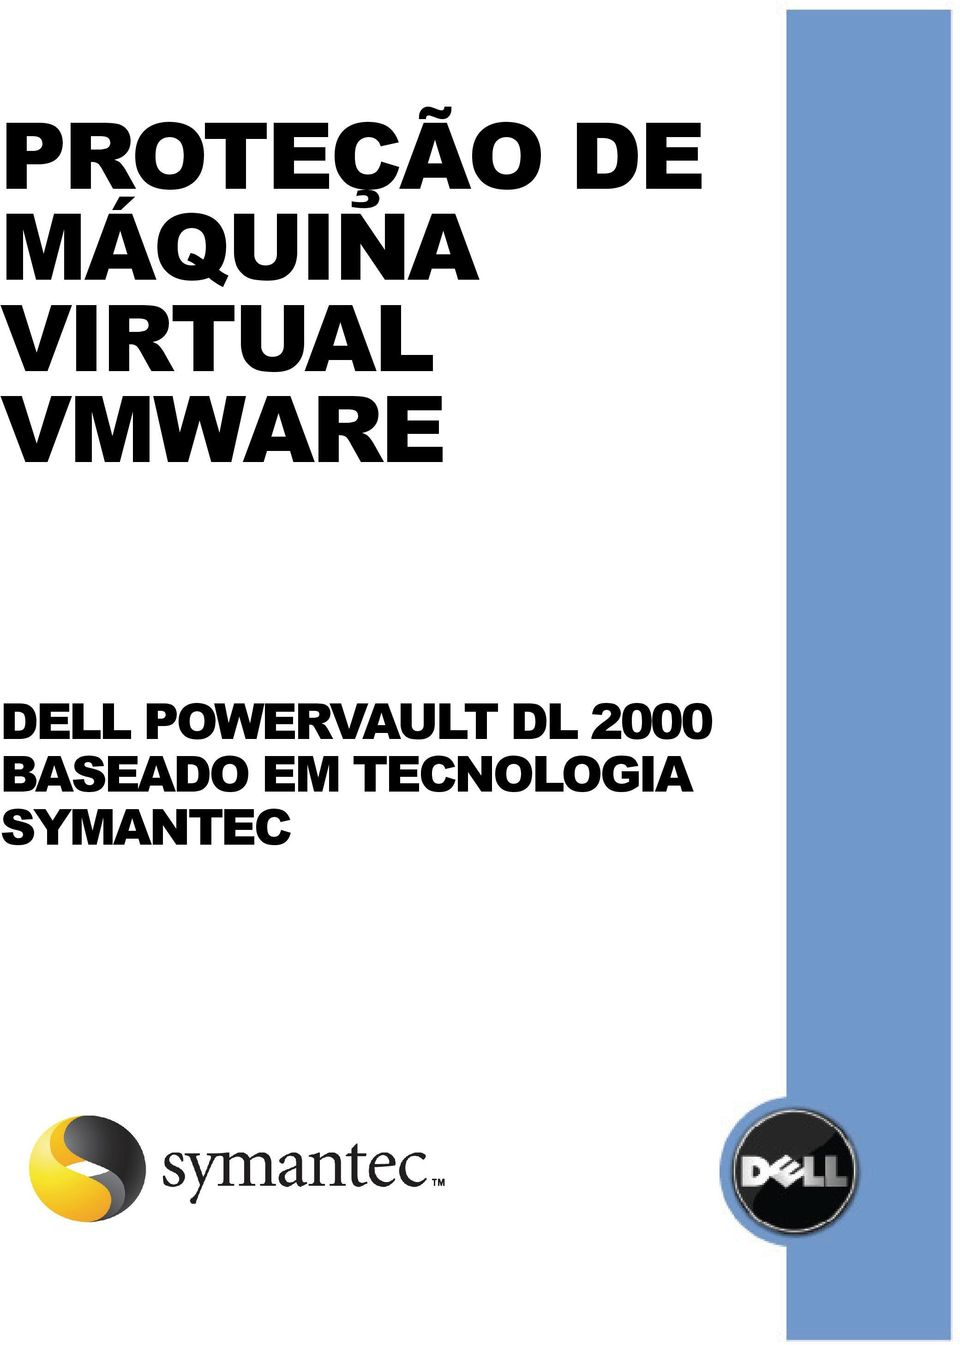 POWERVAULT DL 2000